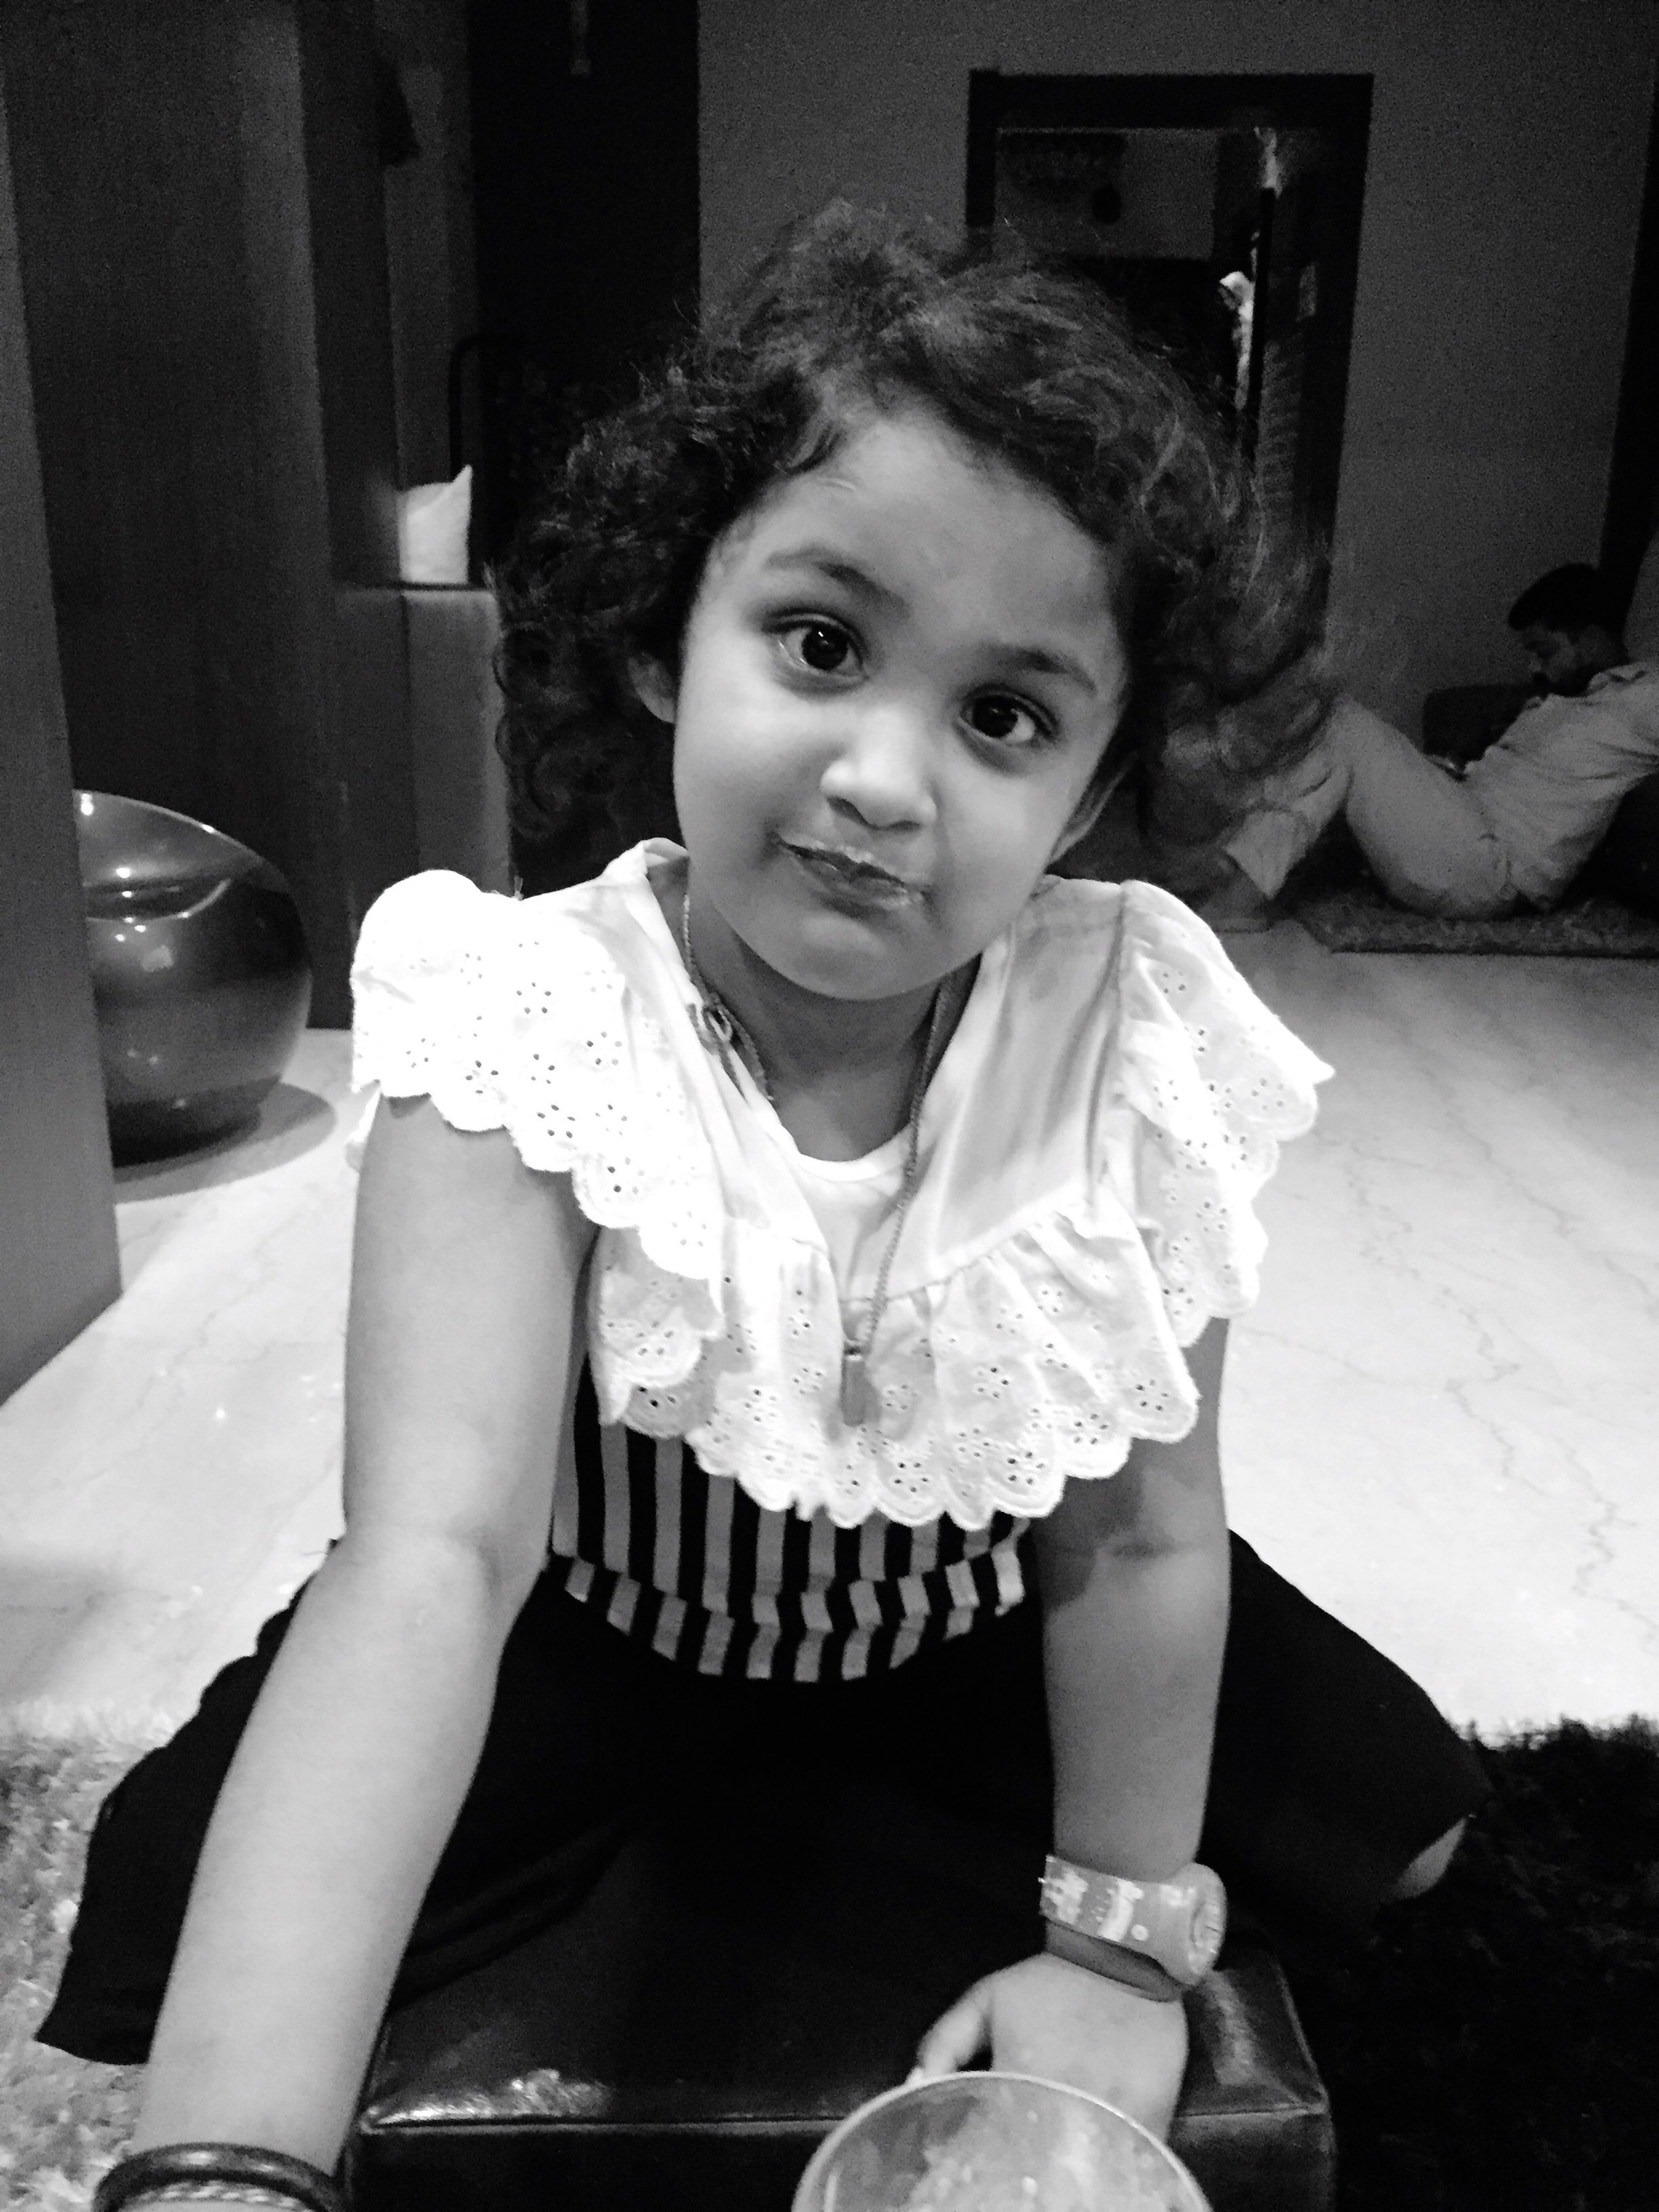 portrait, looking at camera, childhood, front view, lifestyles, indoors, casual clothing, innocence, person, toddler